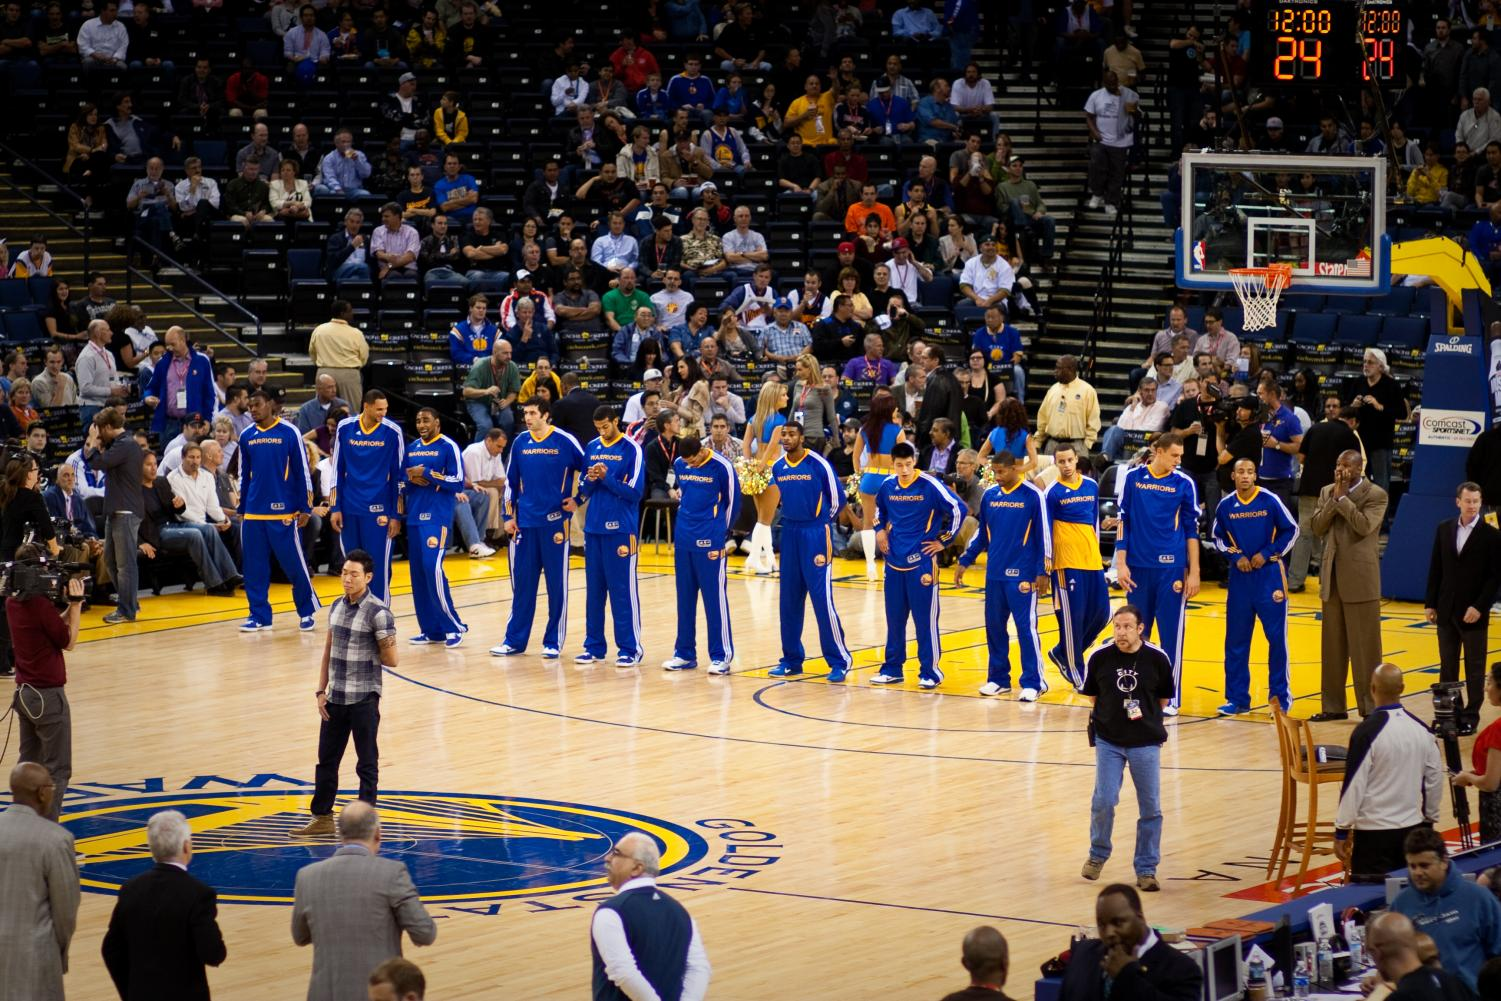 Seen here is the Golden State Warriors, the NBA defending champions, before one of their games.